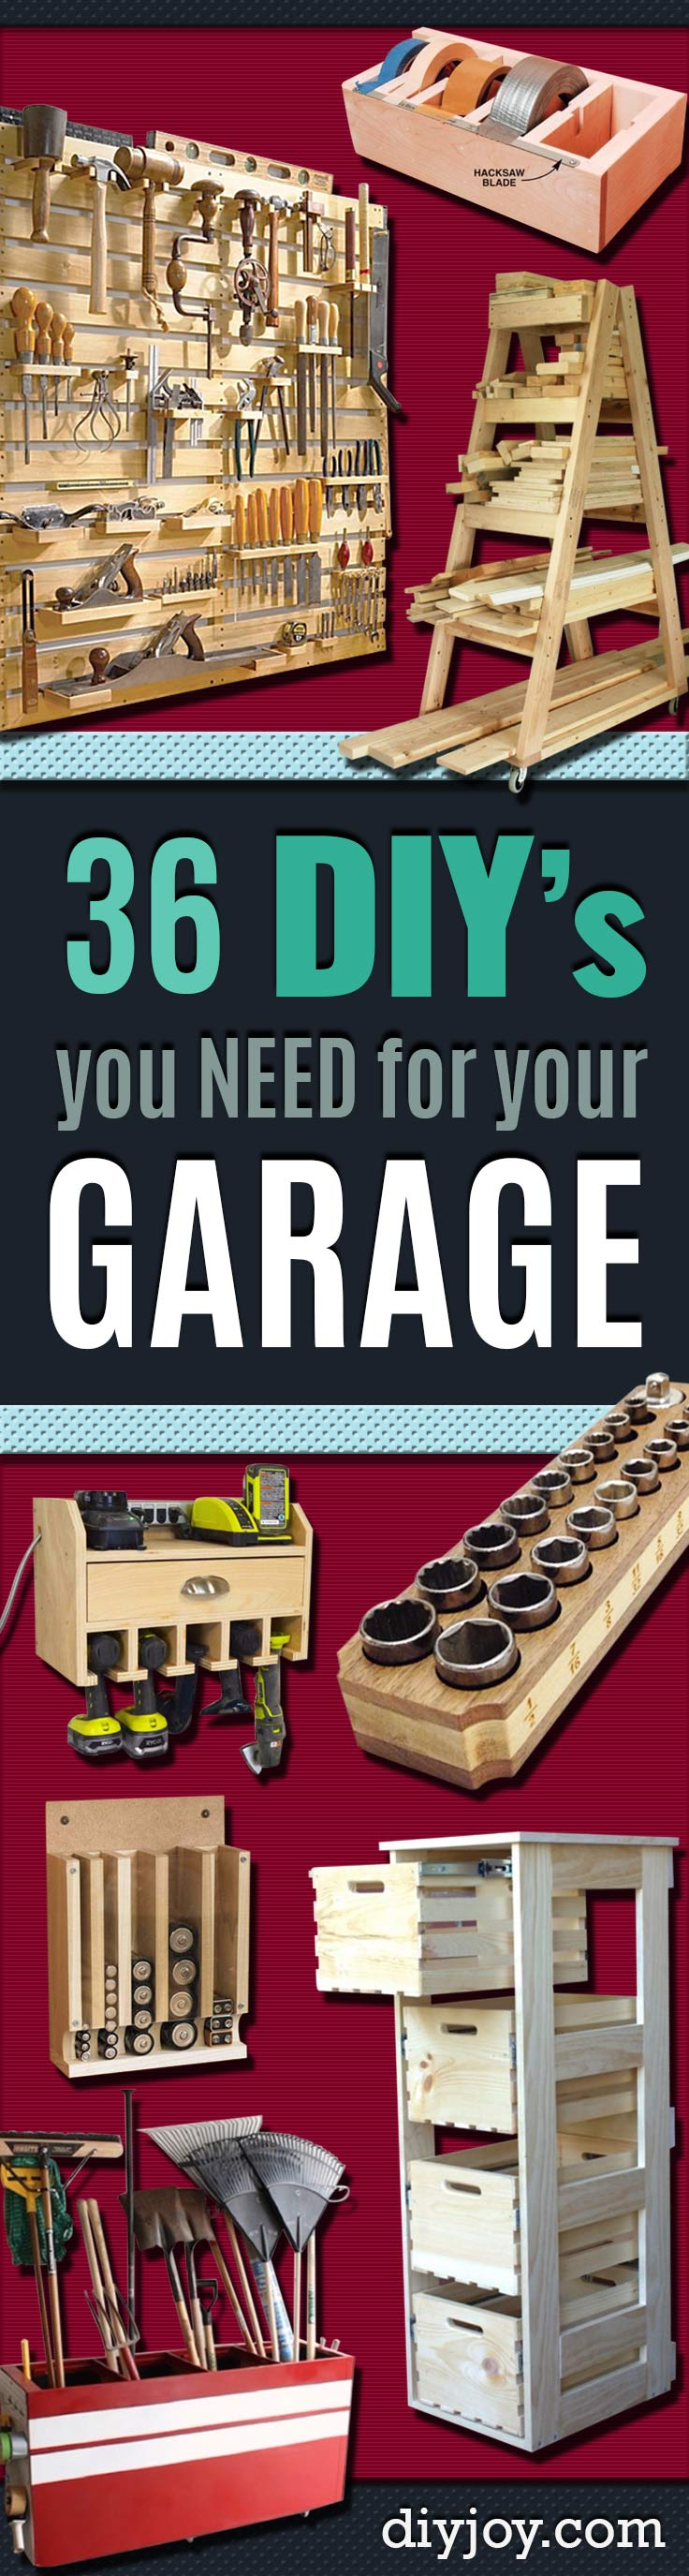 36 diy ideas you need for your garage diy projects your garage needs do it yourself garage makeover ideas include storage organization solutioingenieria Gallery